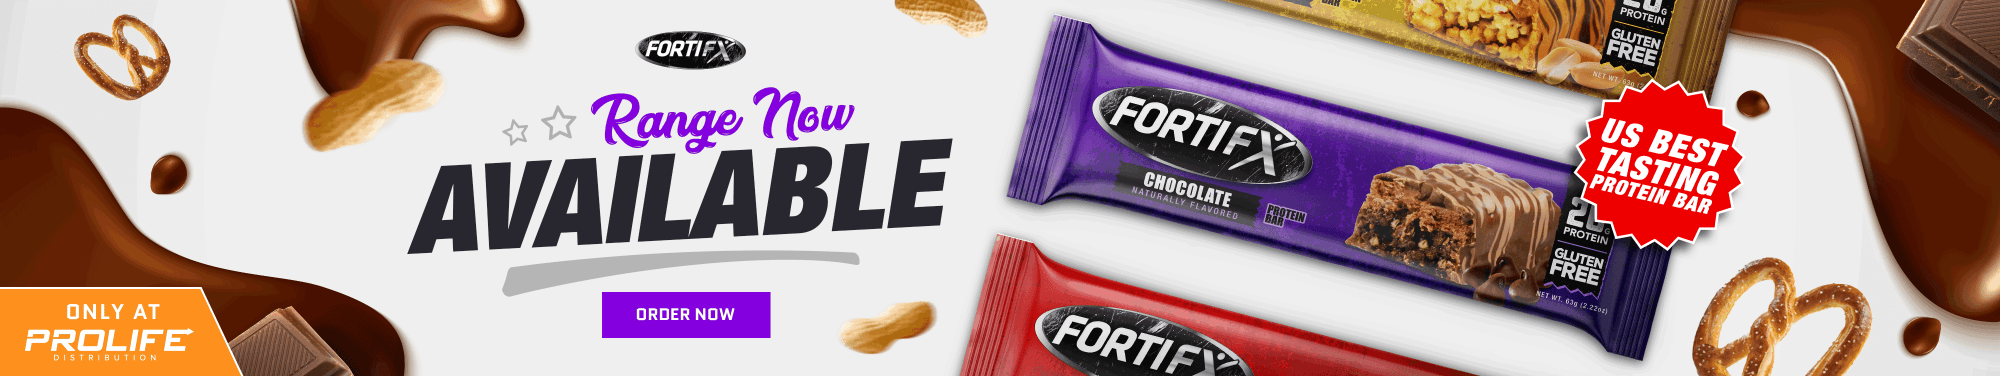 FortiFX Now Available